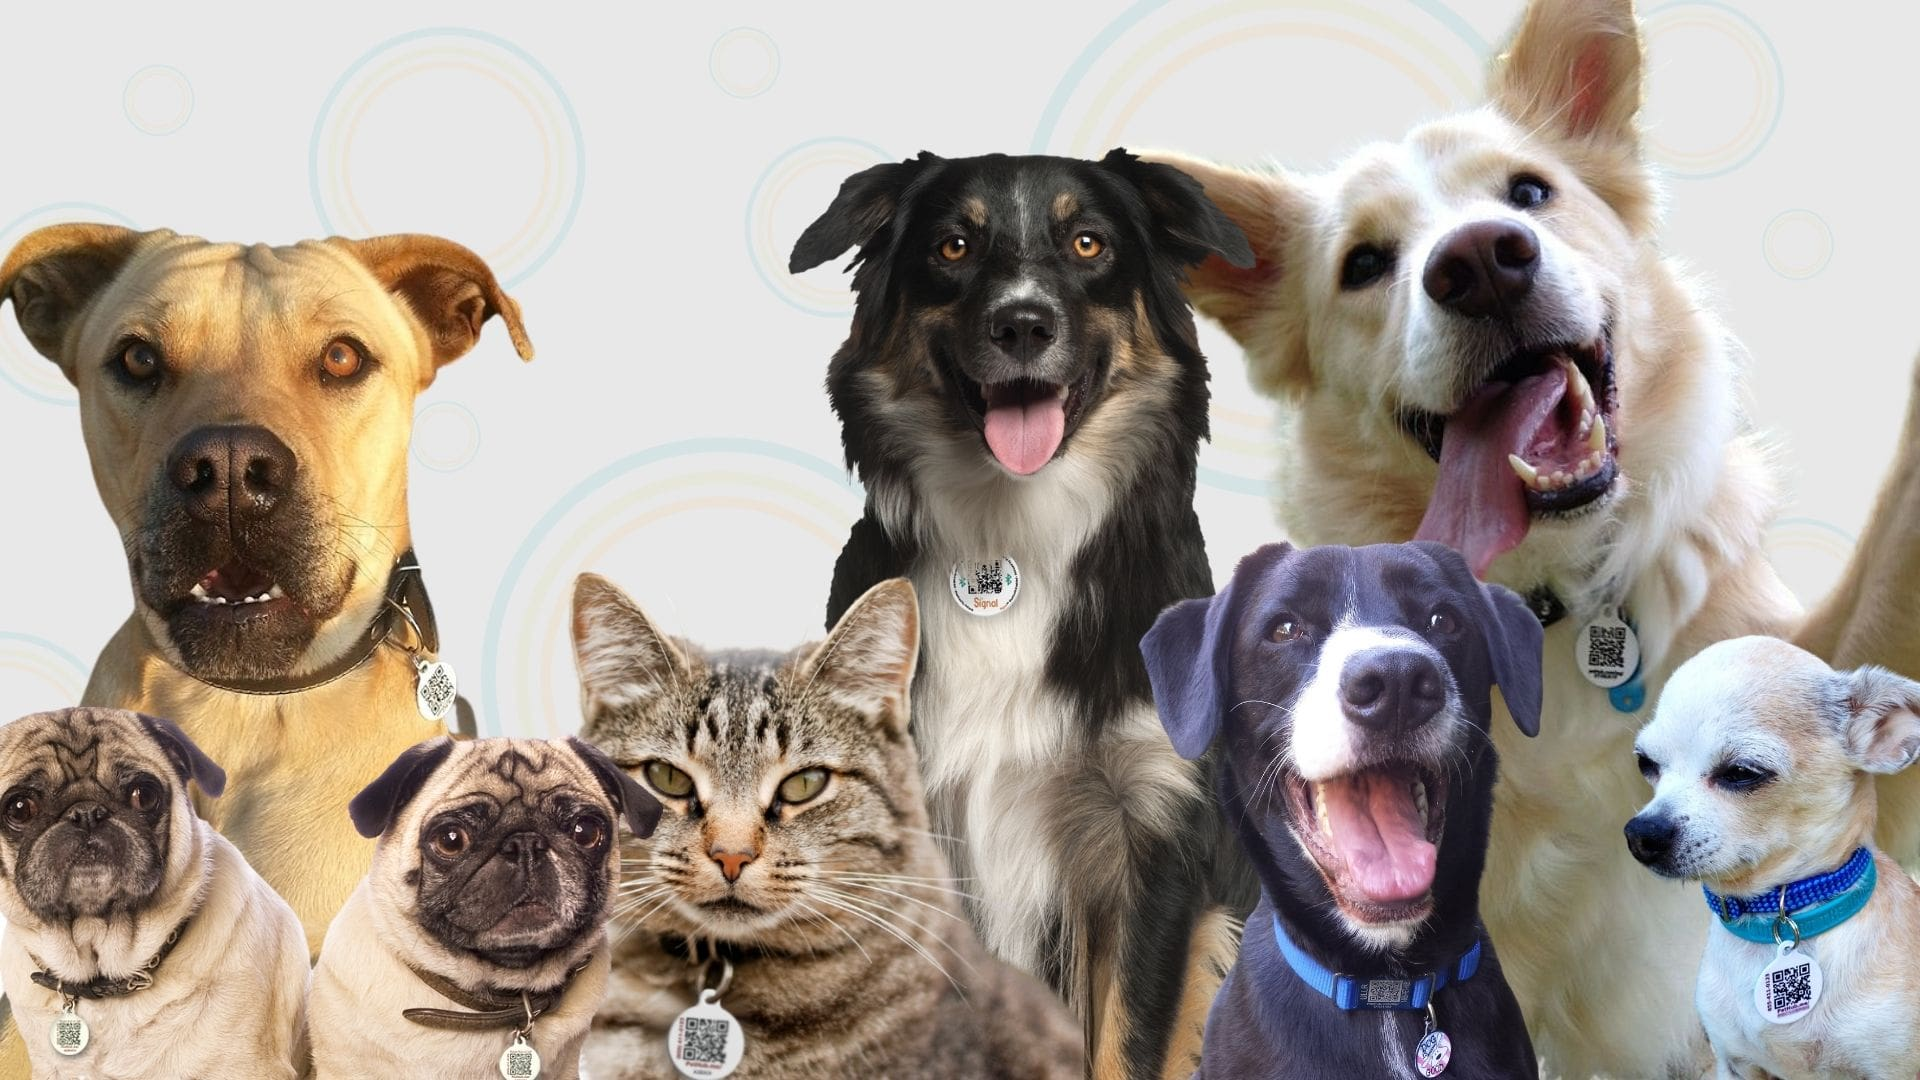 Collage of dogs and cats wearing PetHub tags